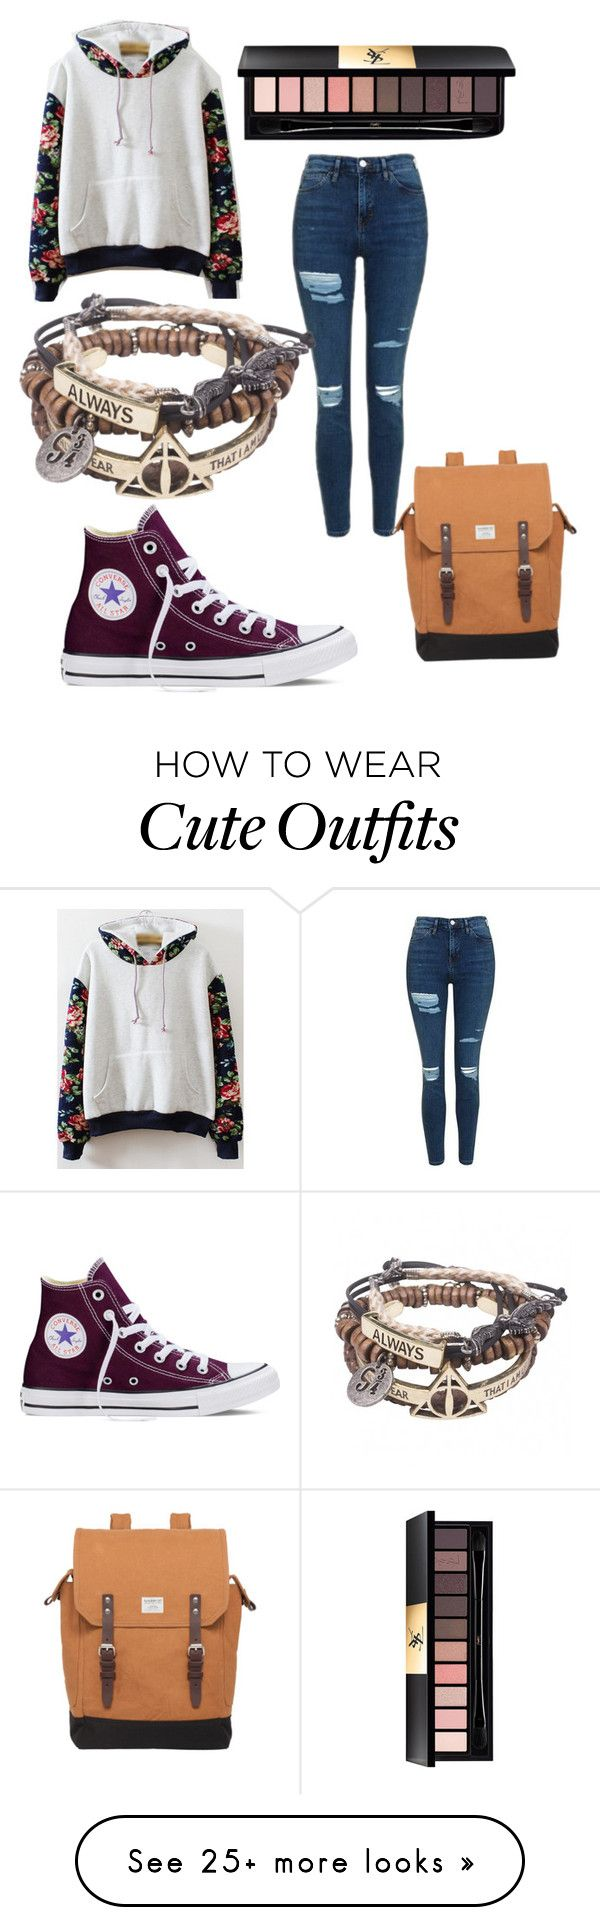 """Another School Outfit"" by chaoticstars on Polyvore featuring Topshop, Converse, Yves Saint Laurent and Sandqvist"